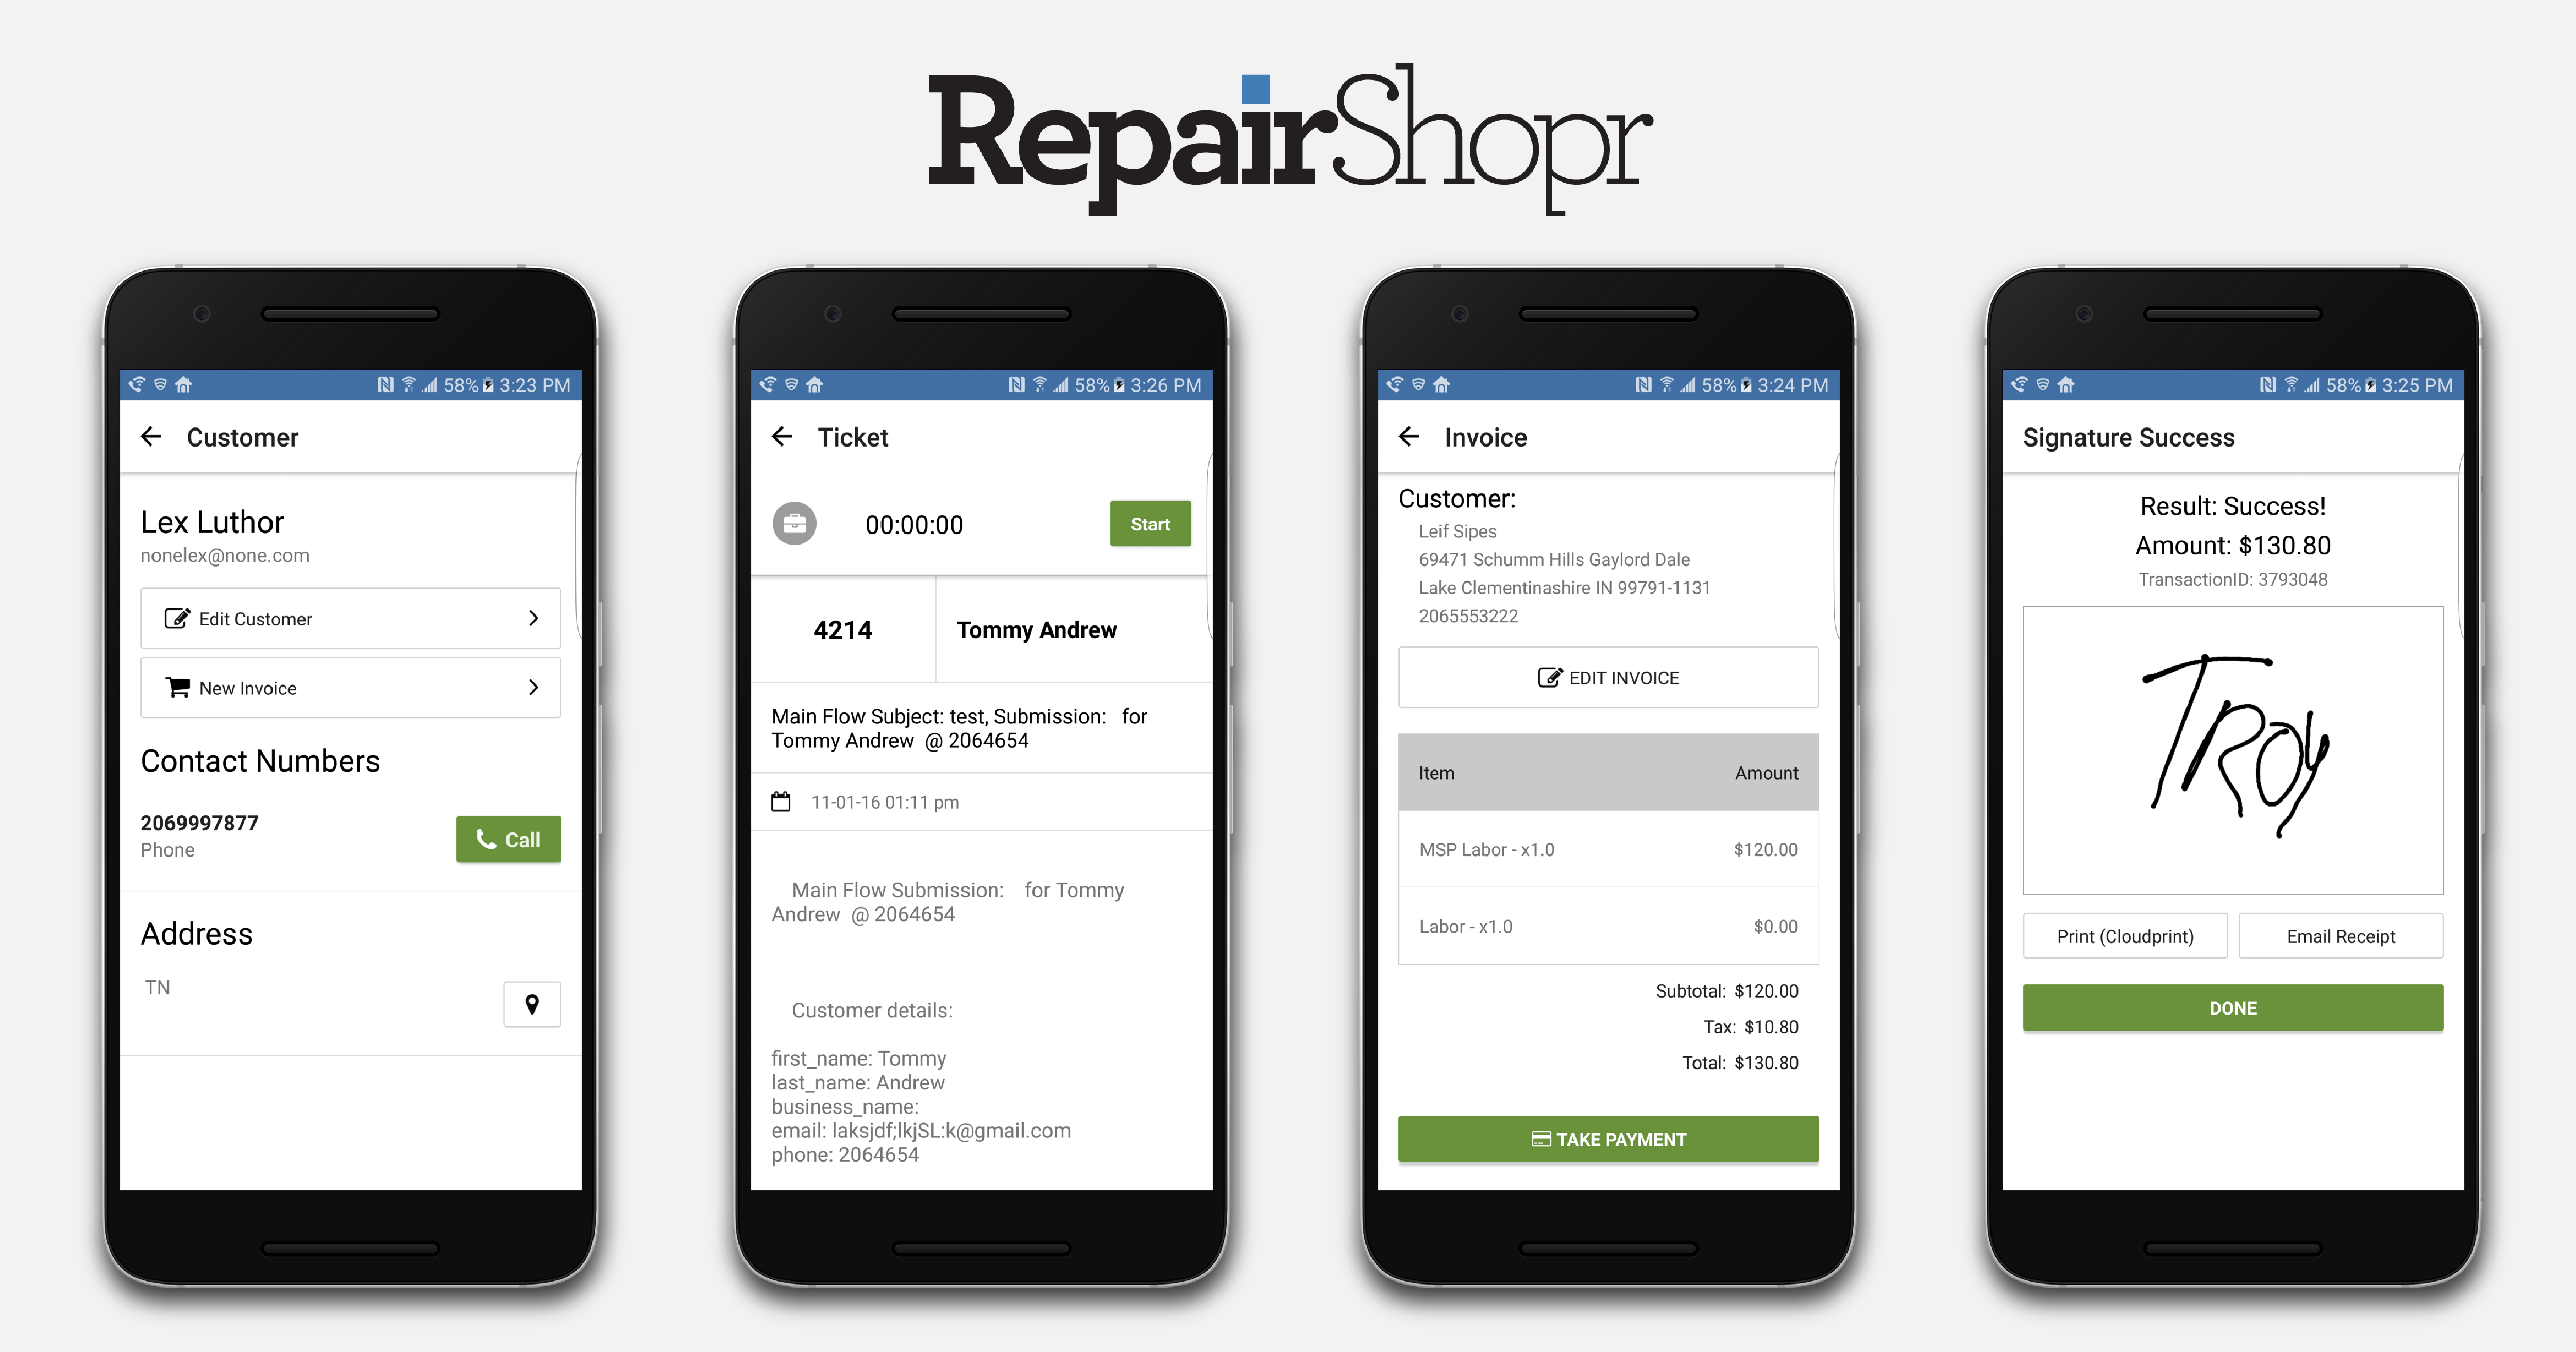 Recent updates from RepairShopr for 2016-12-09